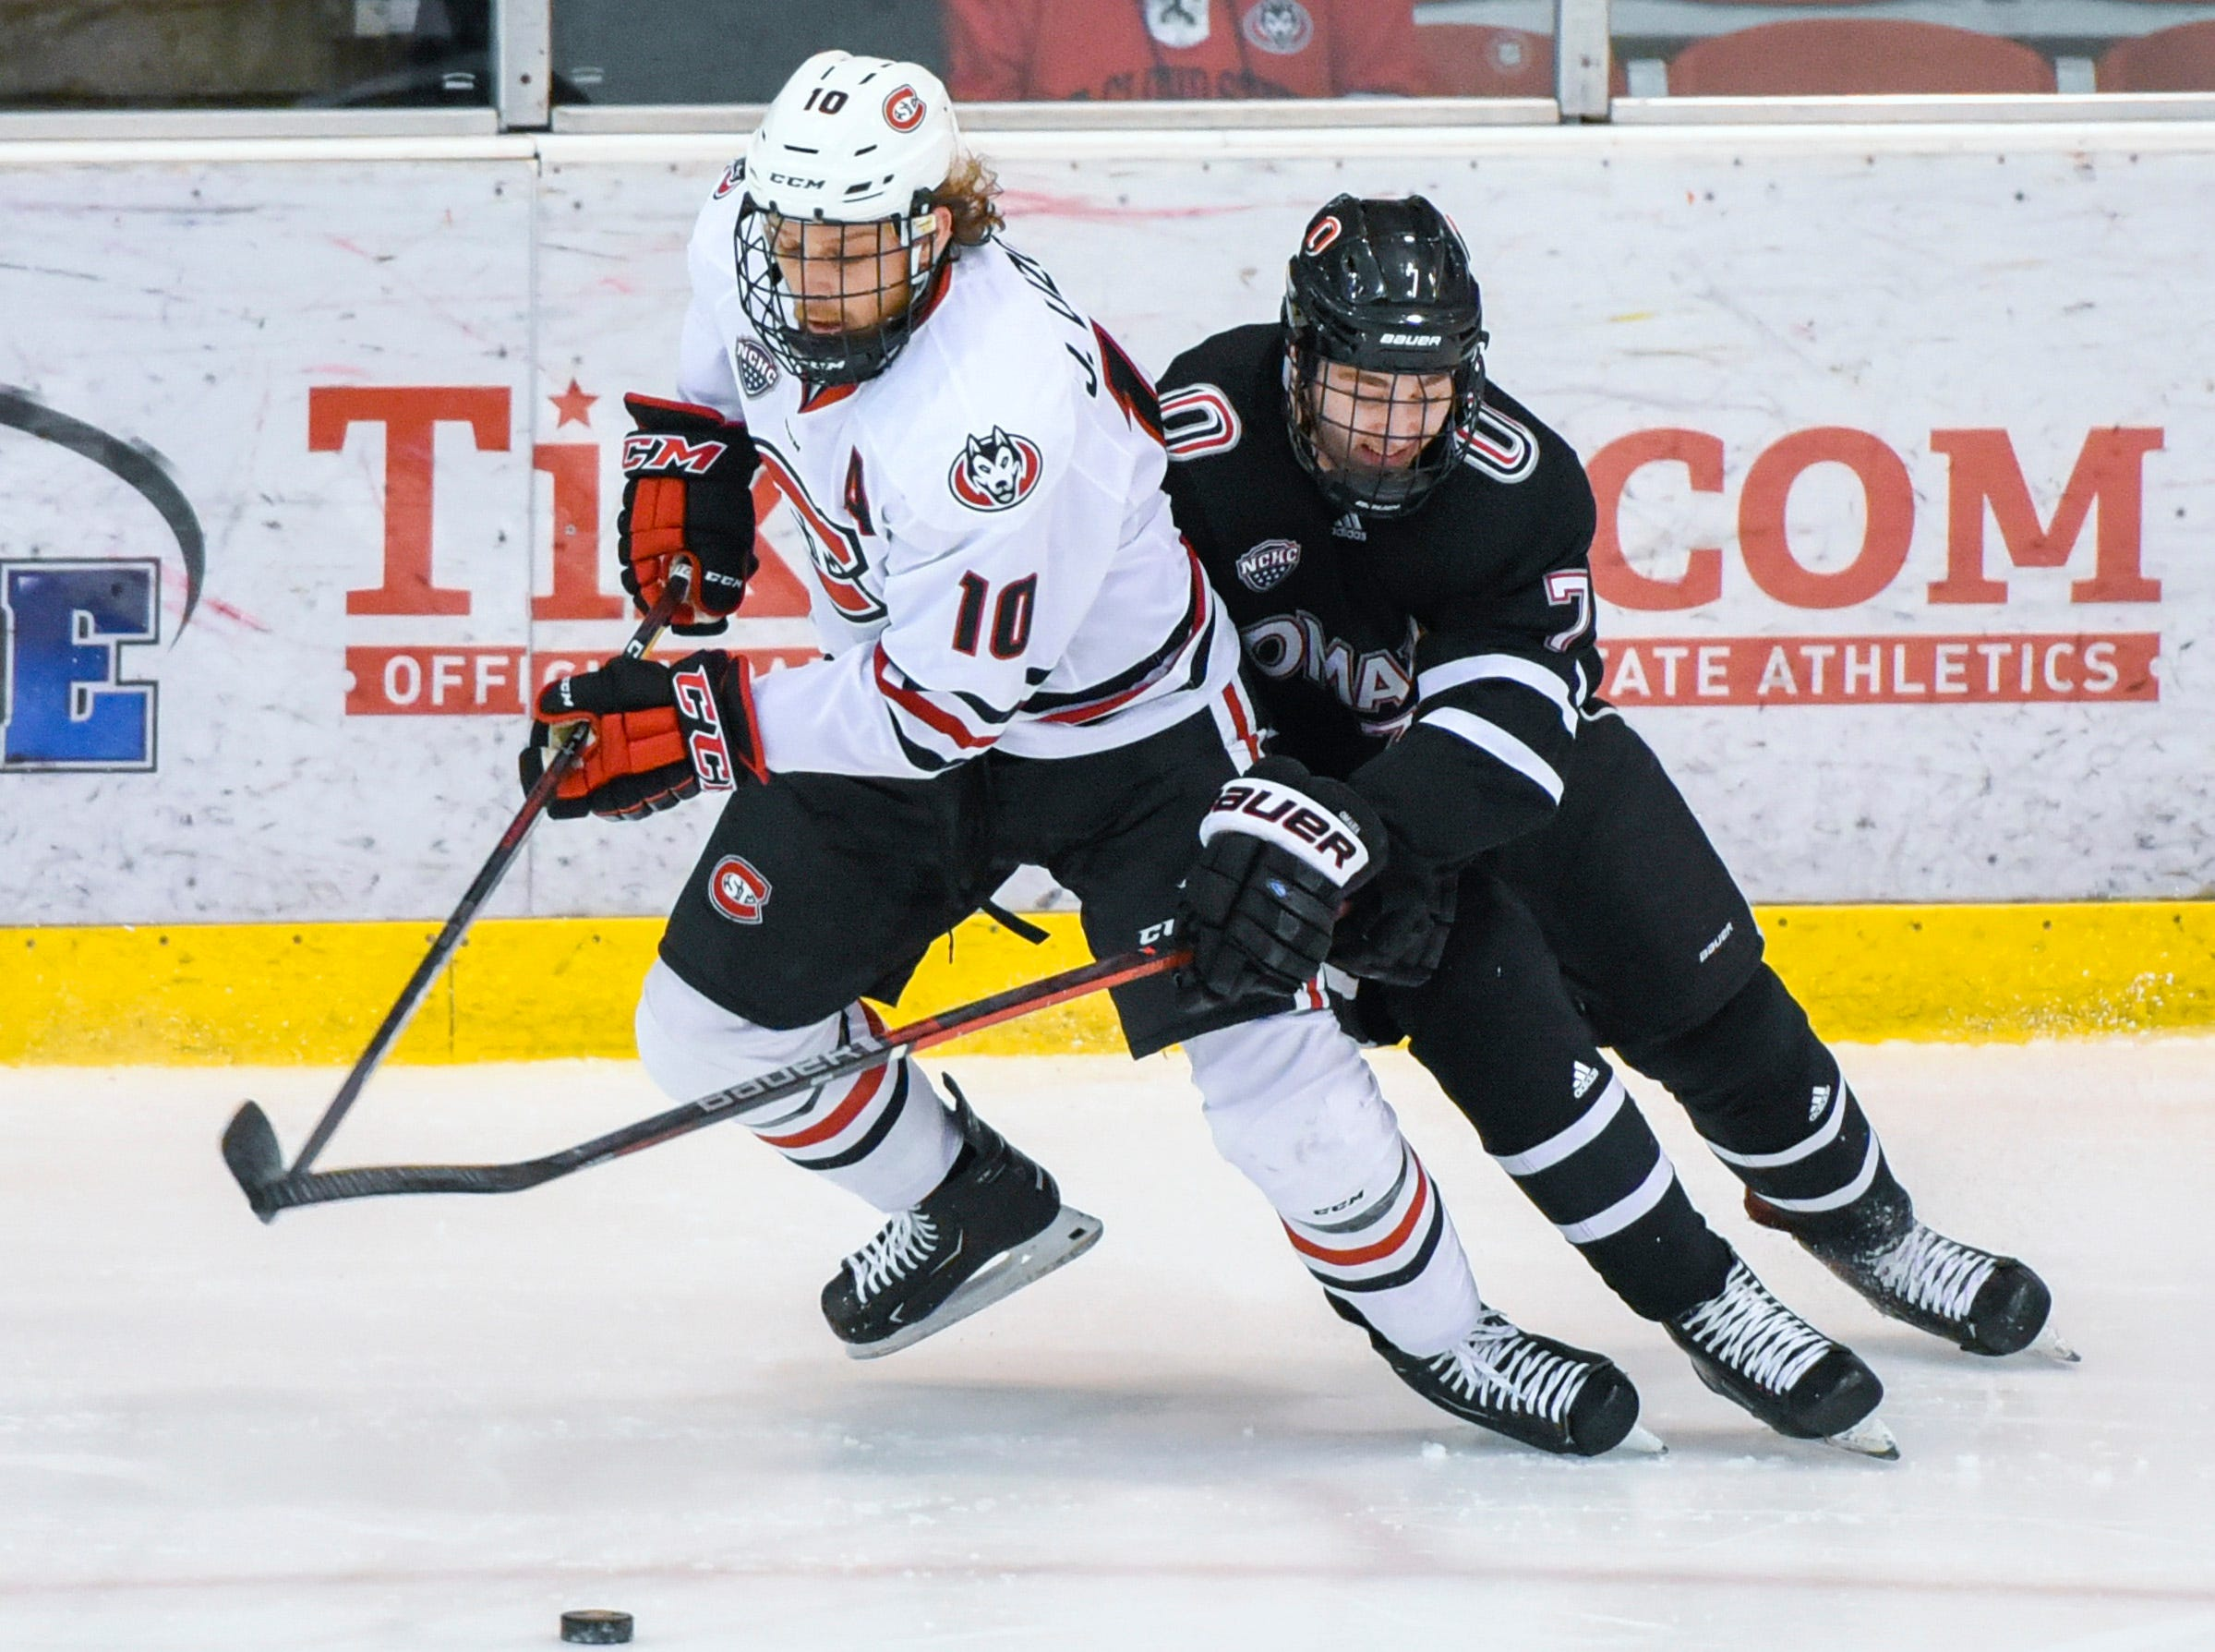 St. Cloud State's Jon Lizotte and Nebraska-Omaha's Nate Knoepke battle for a loose puck during the first period Friday, Dec. 7, at the Herb Brooks National Hockey Center.